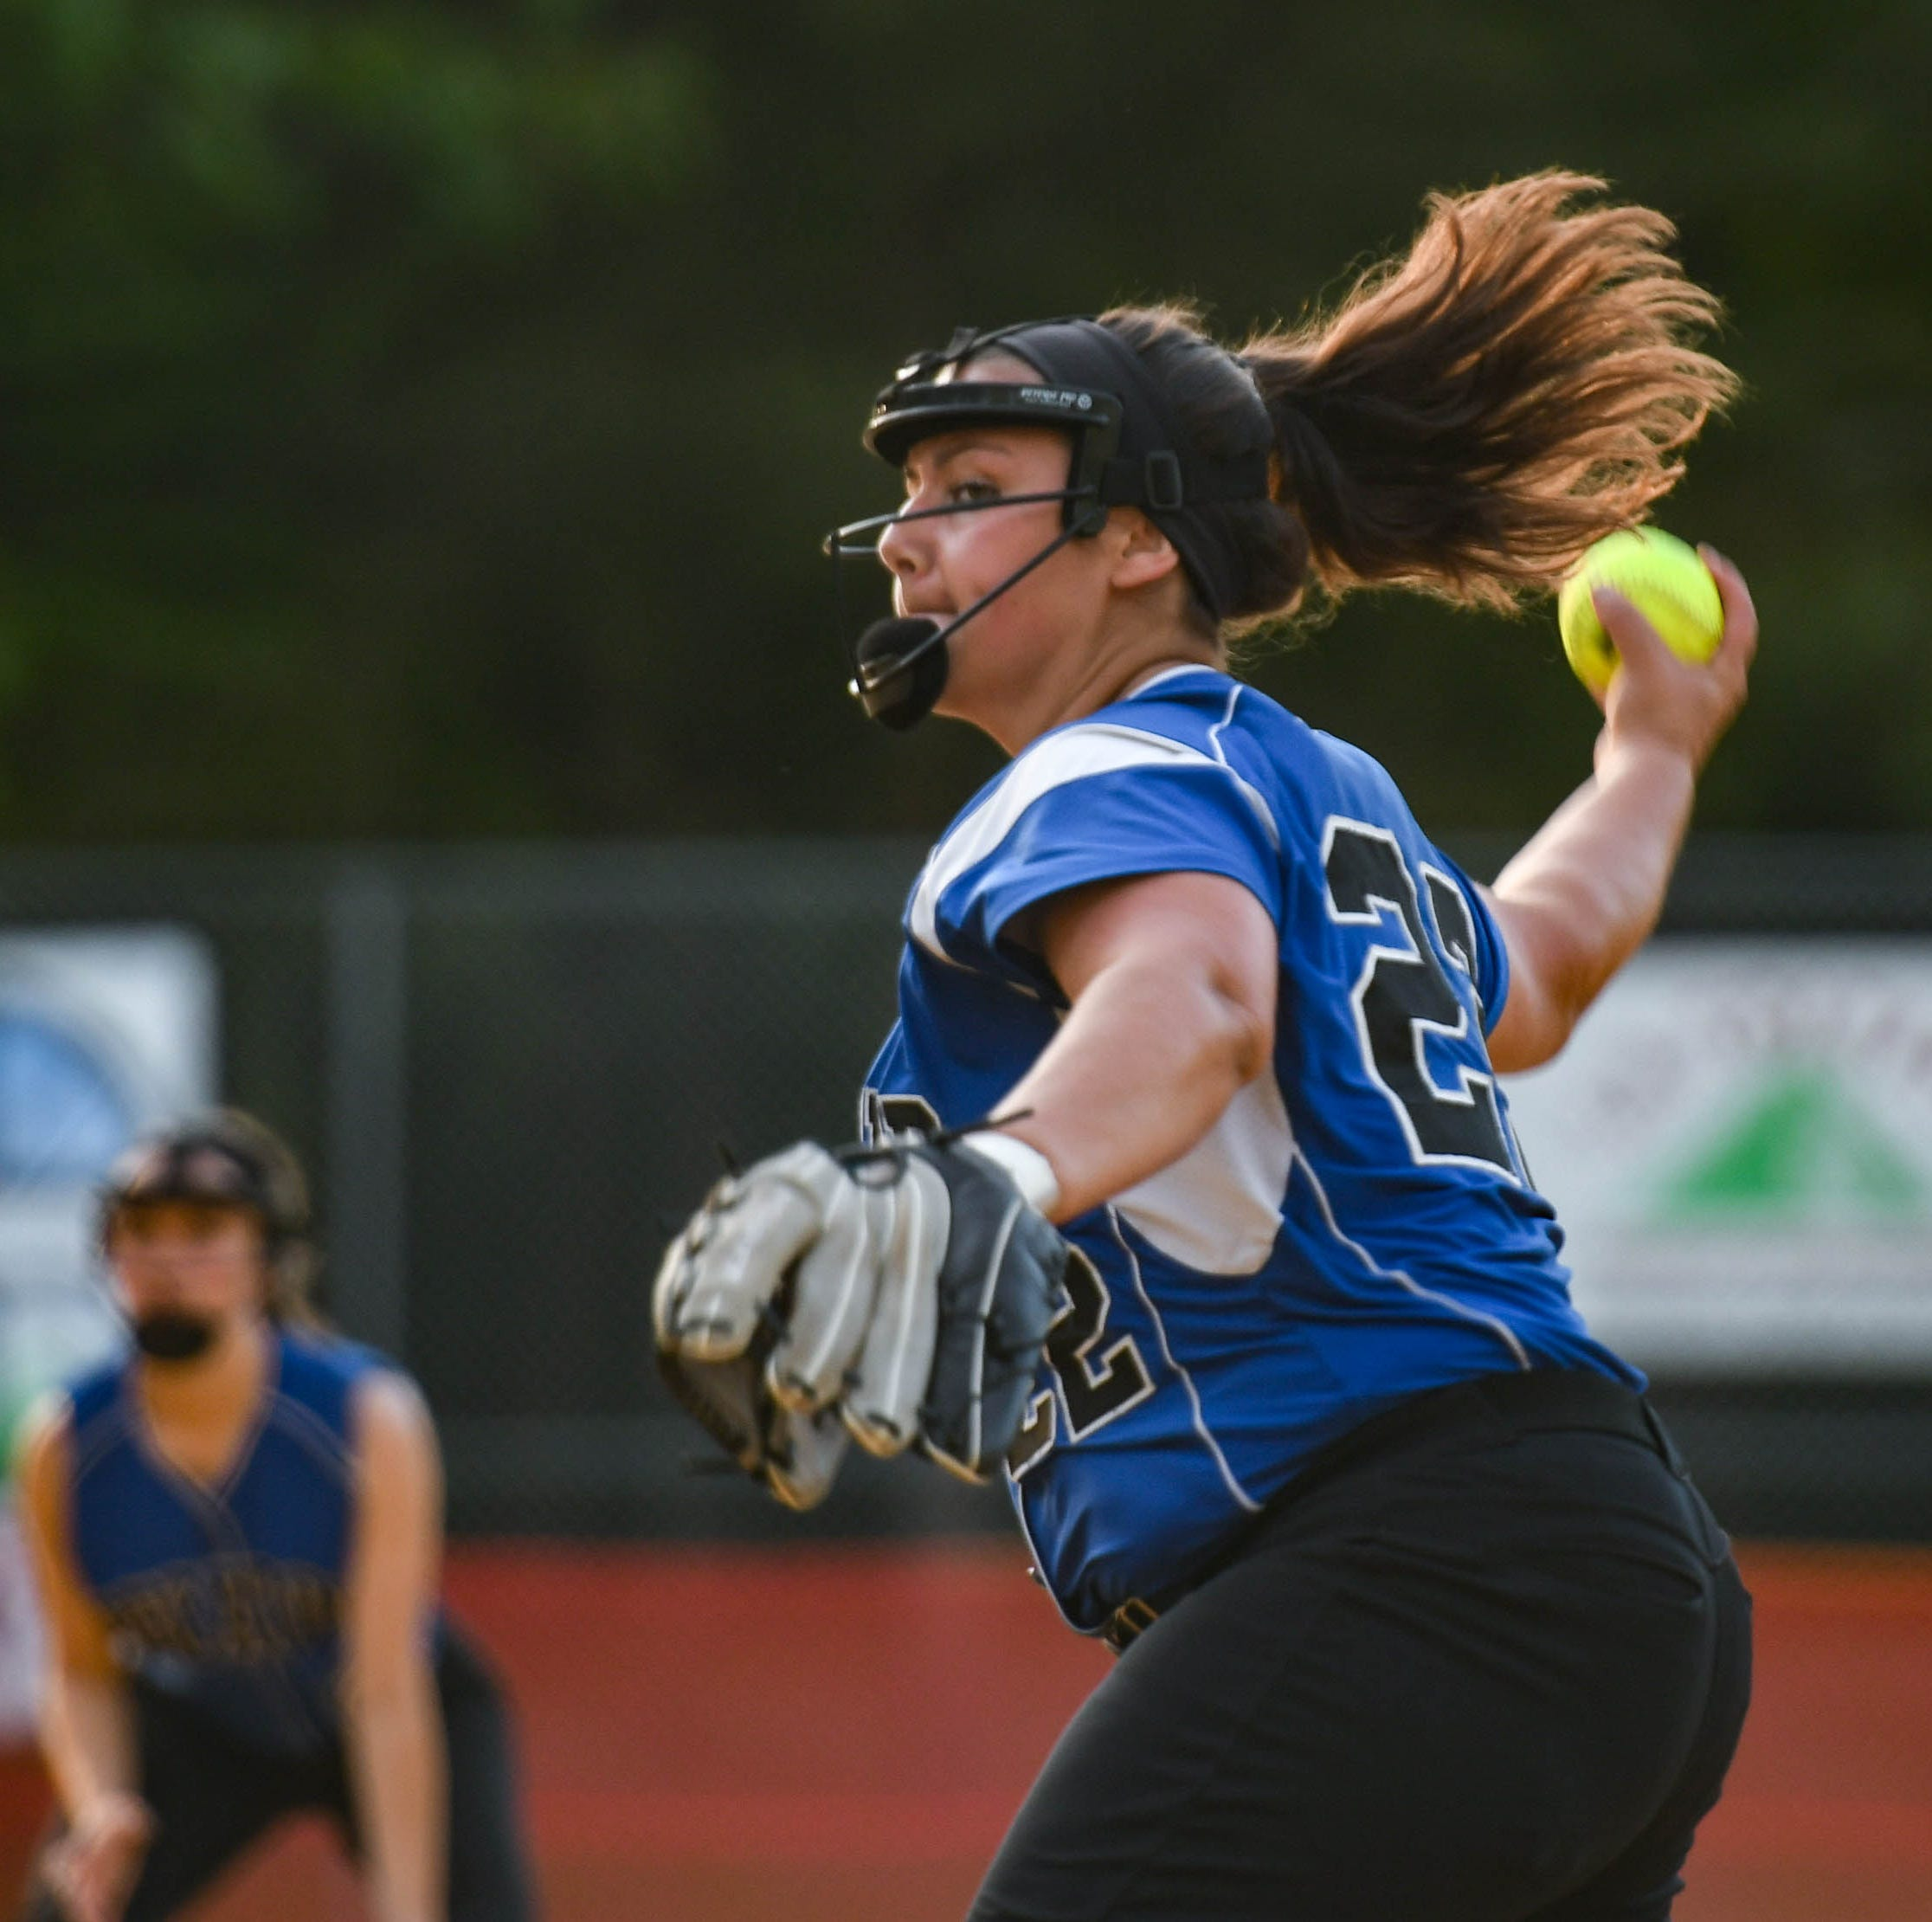 Stephen Decatur softball wins first conference title in 19 years, Mardela baseball falls